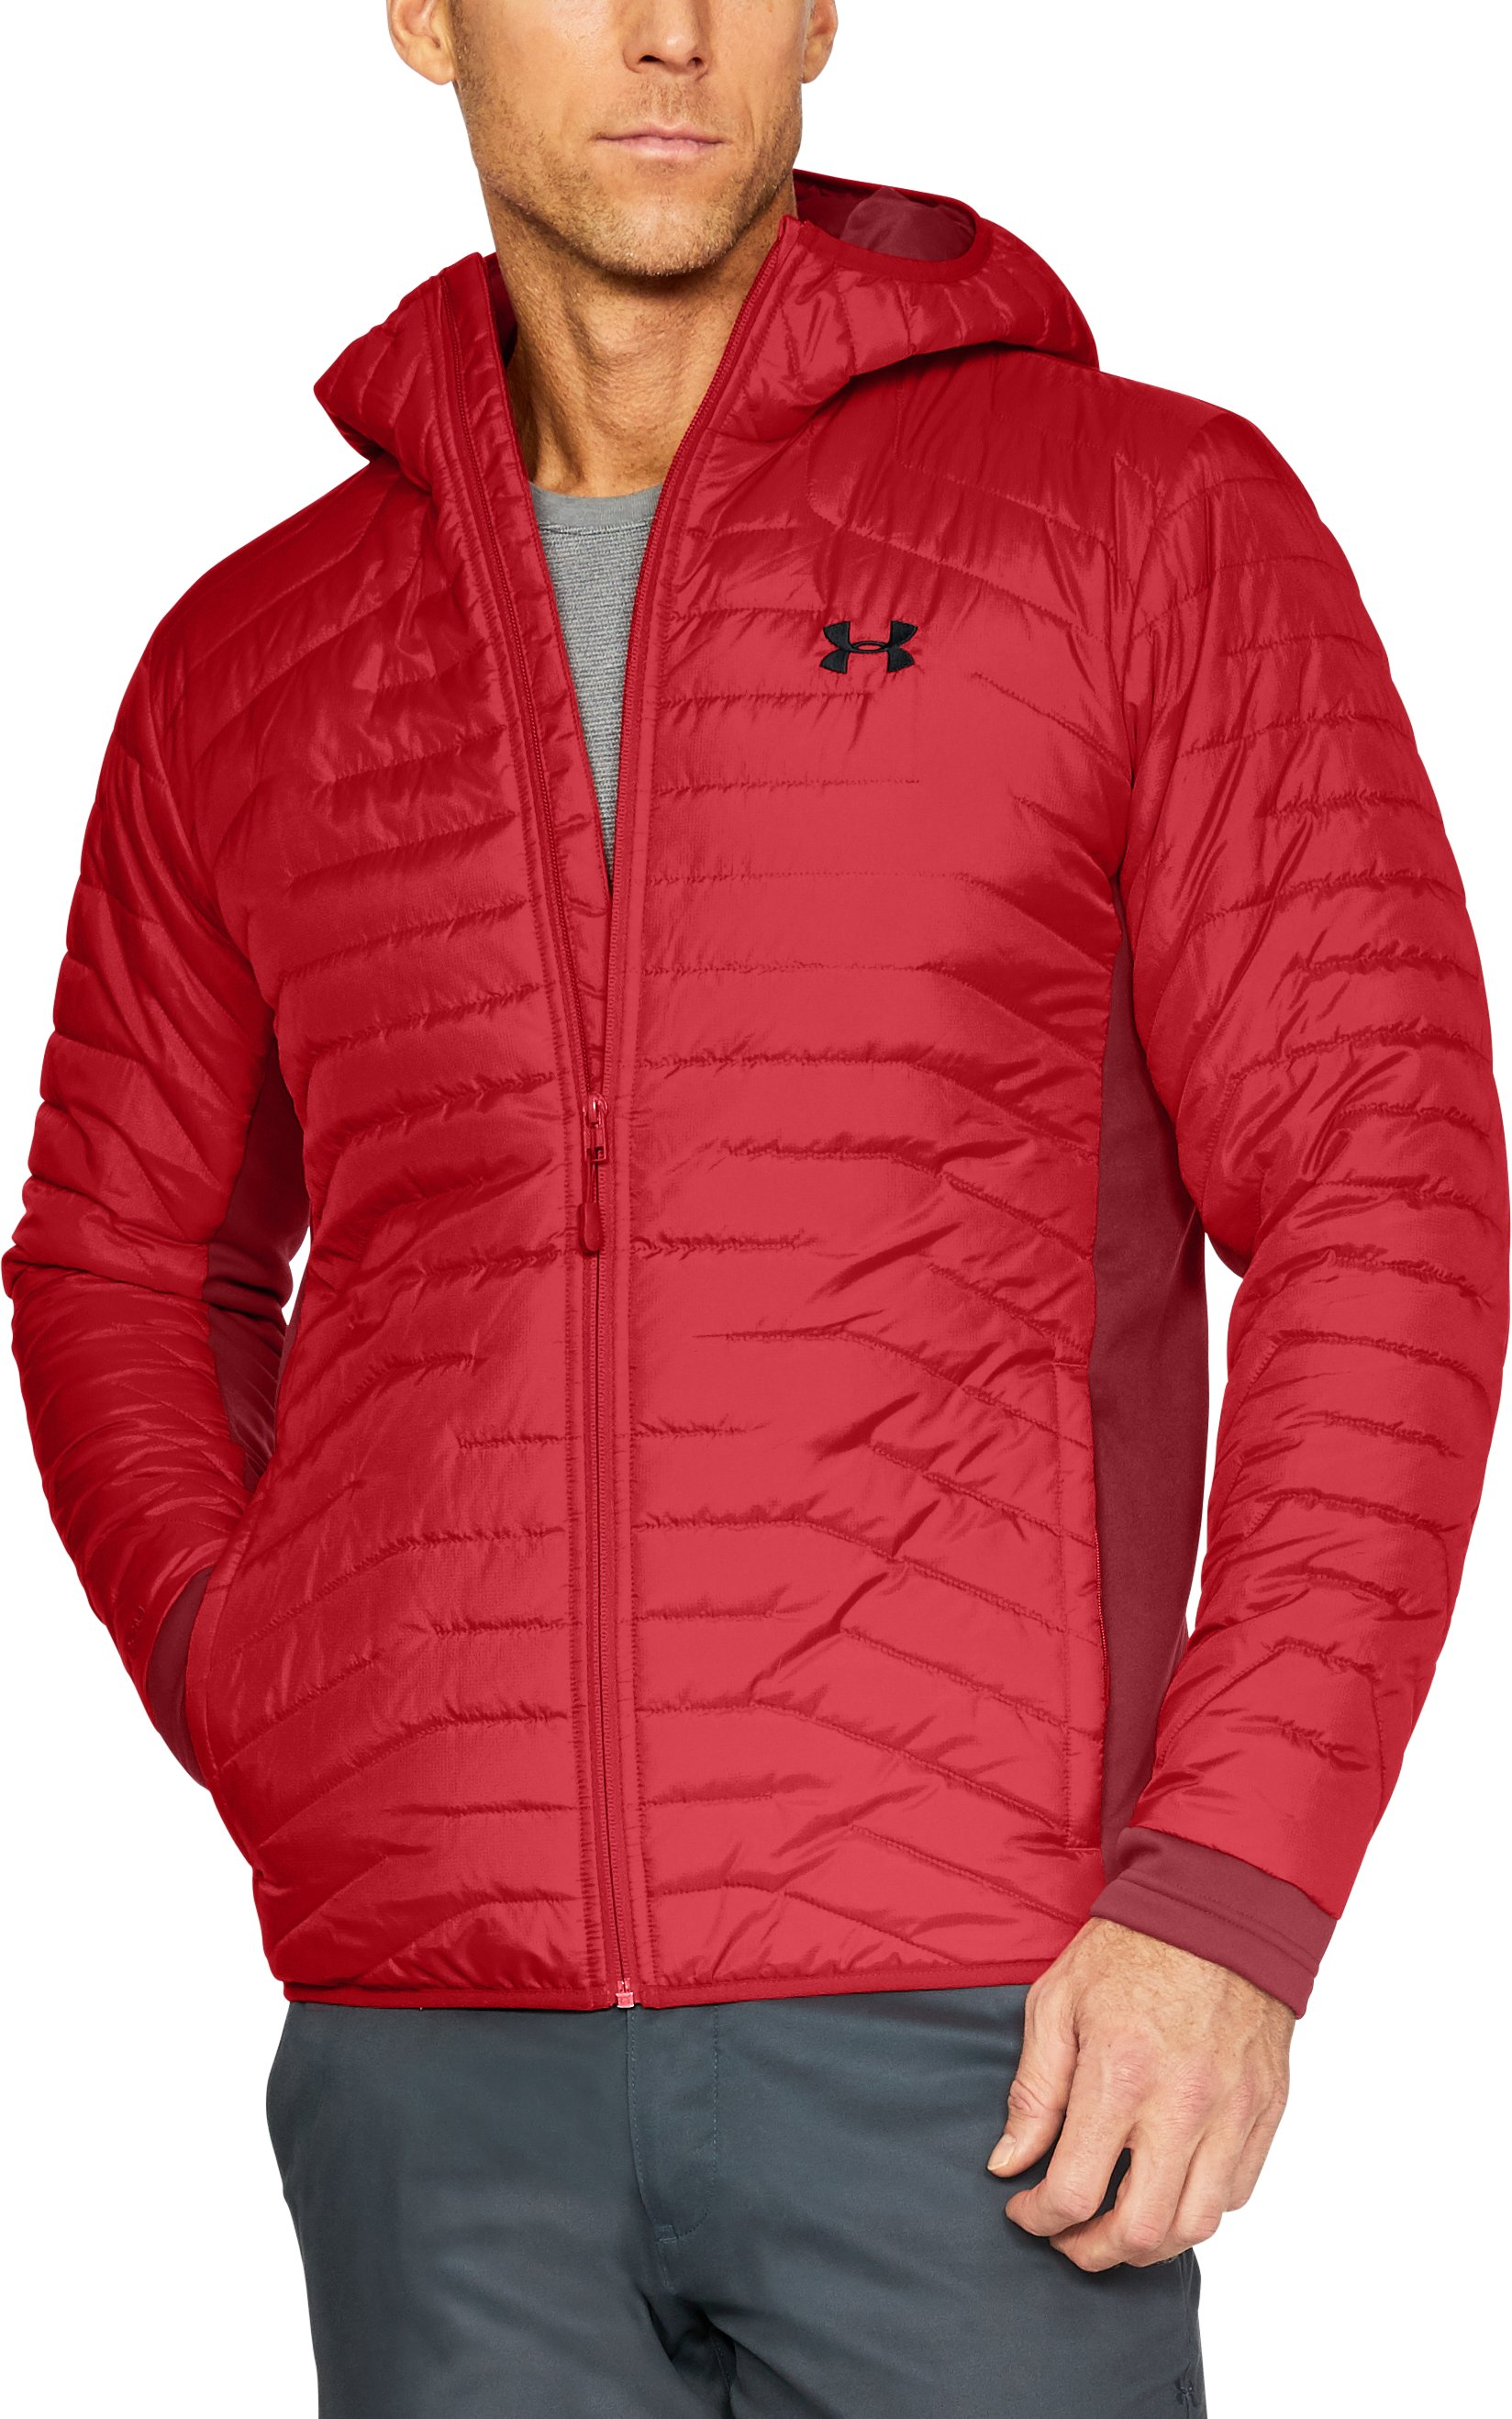 Men's ColdGear® Reactor Hybrid Jacket, Red, undefined